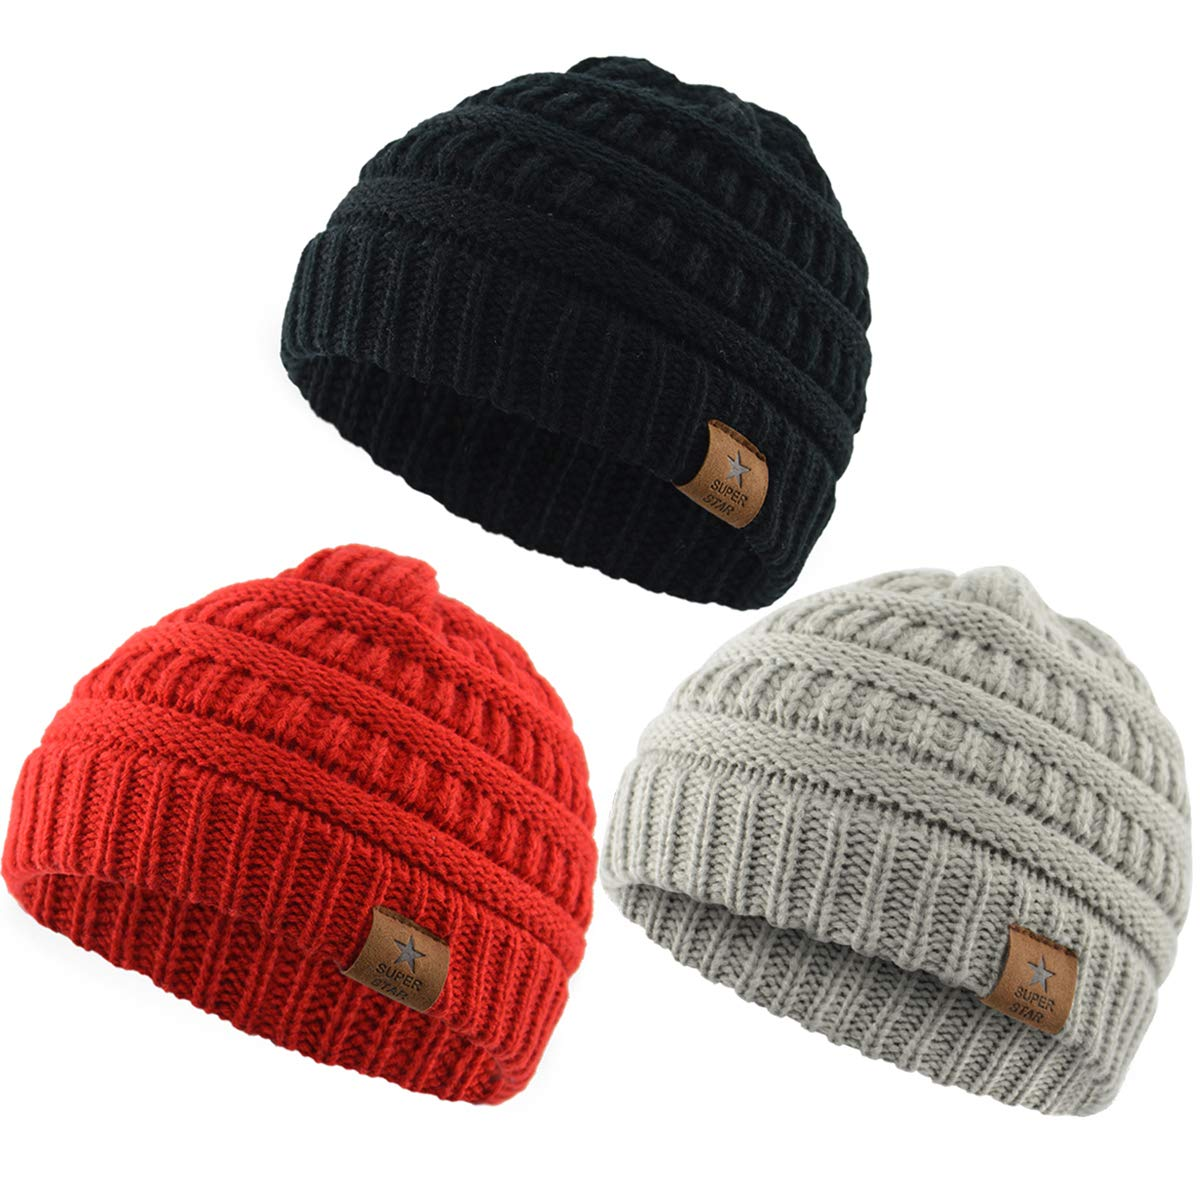 Amazon.com  American Trends Kids Baby Boy Girl Winter Knit Warm Hats Infant Toddler  Beanie Caps Black  Clothing f201a7b1289